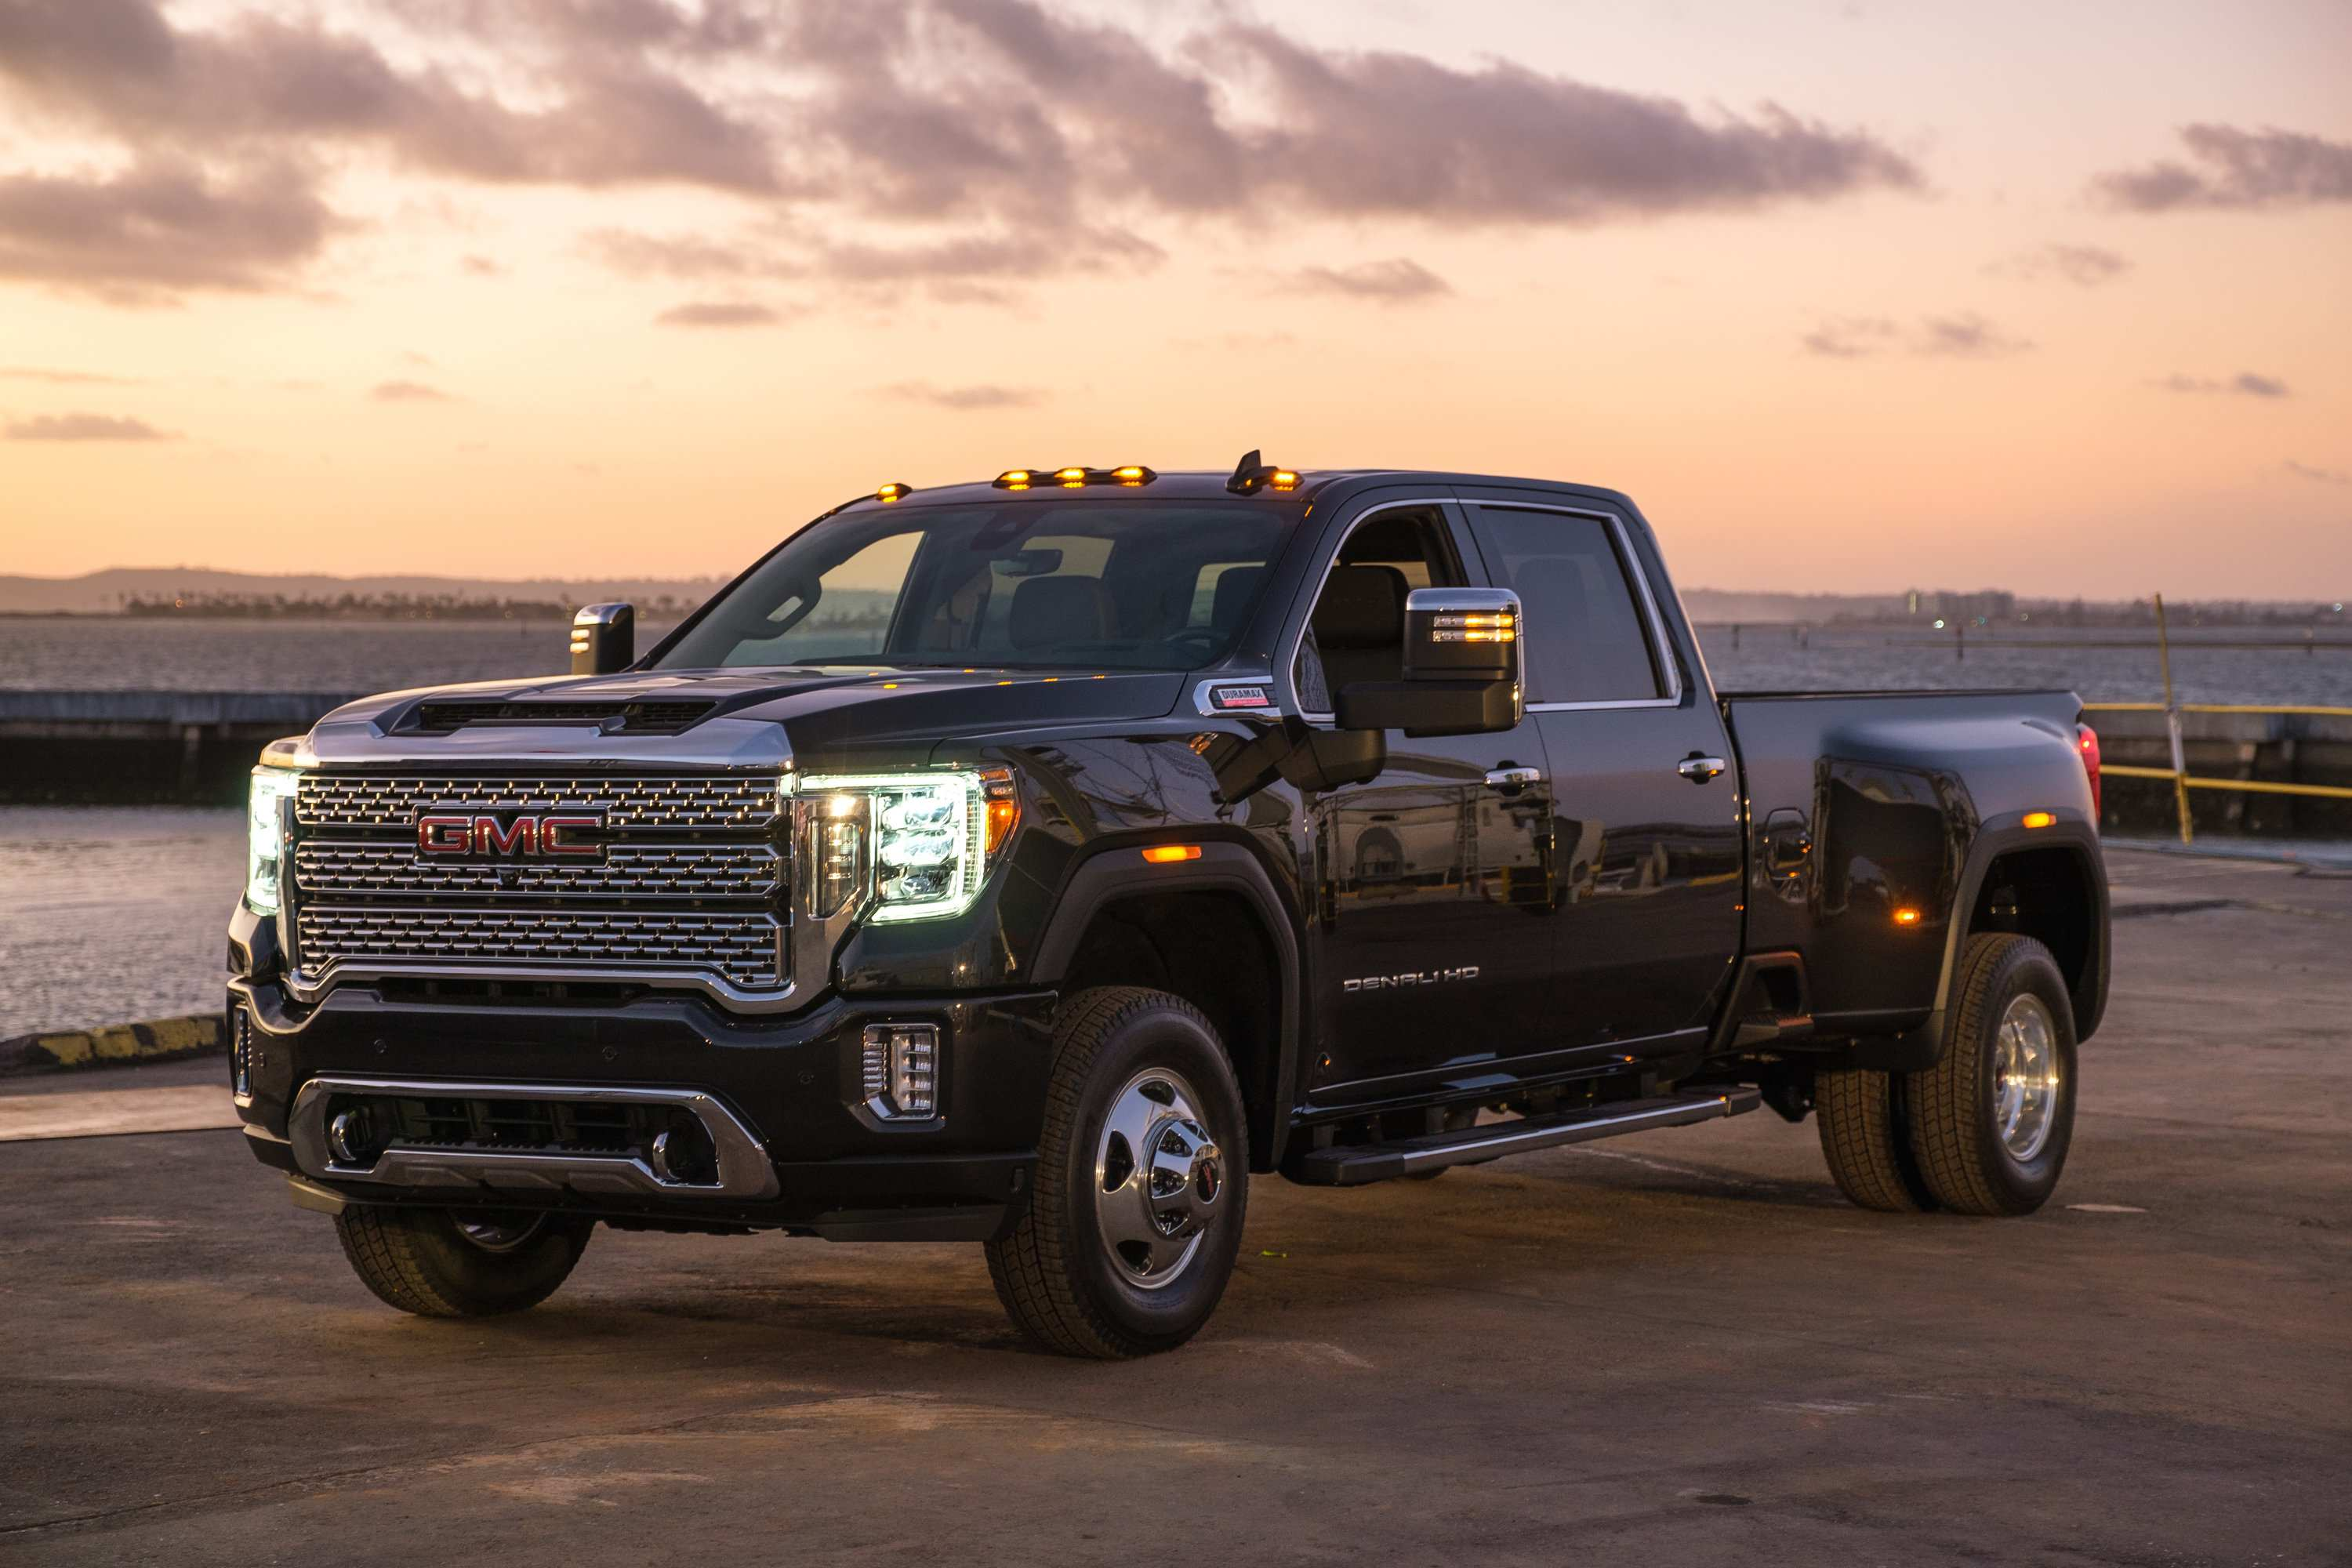 49 Best Gmc New Body Style 2020 Price Design And Review